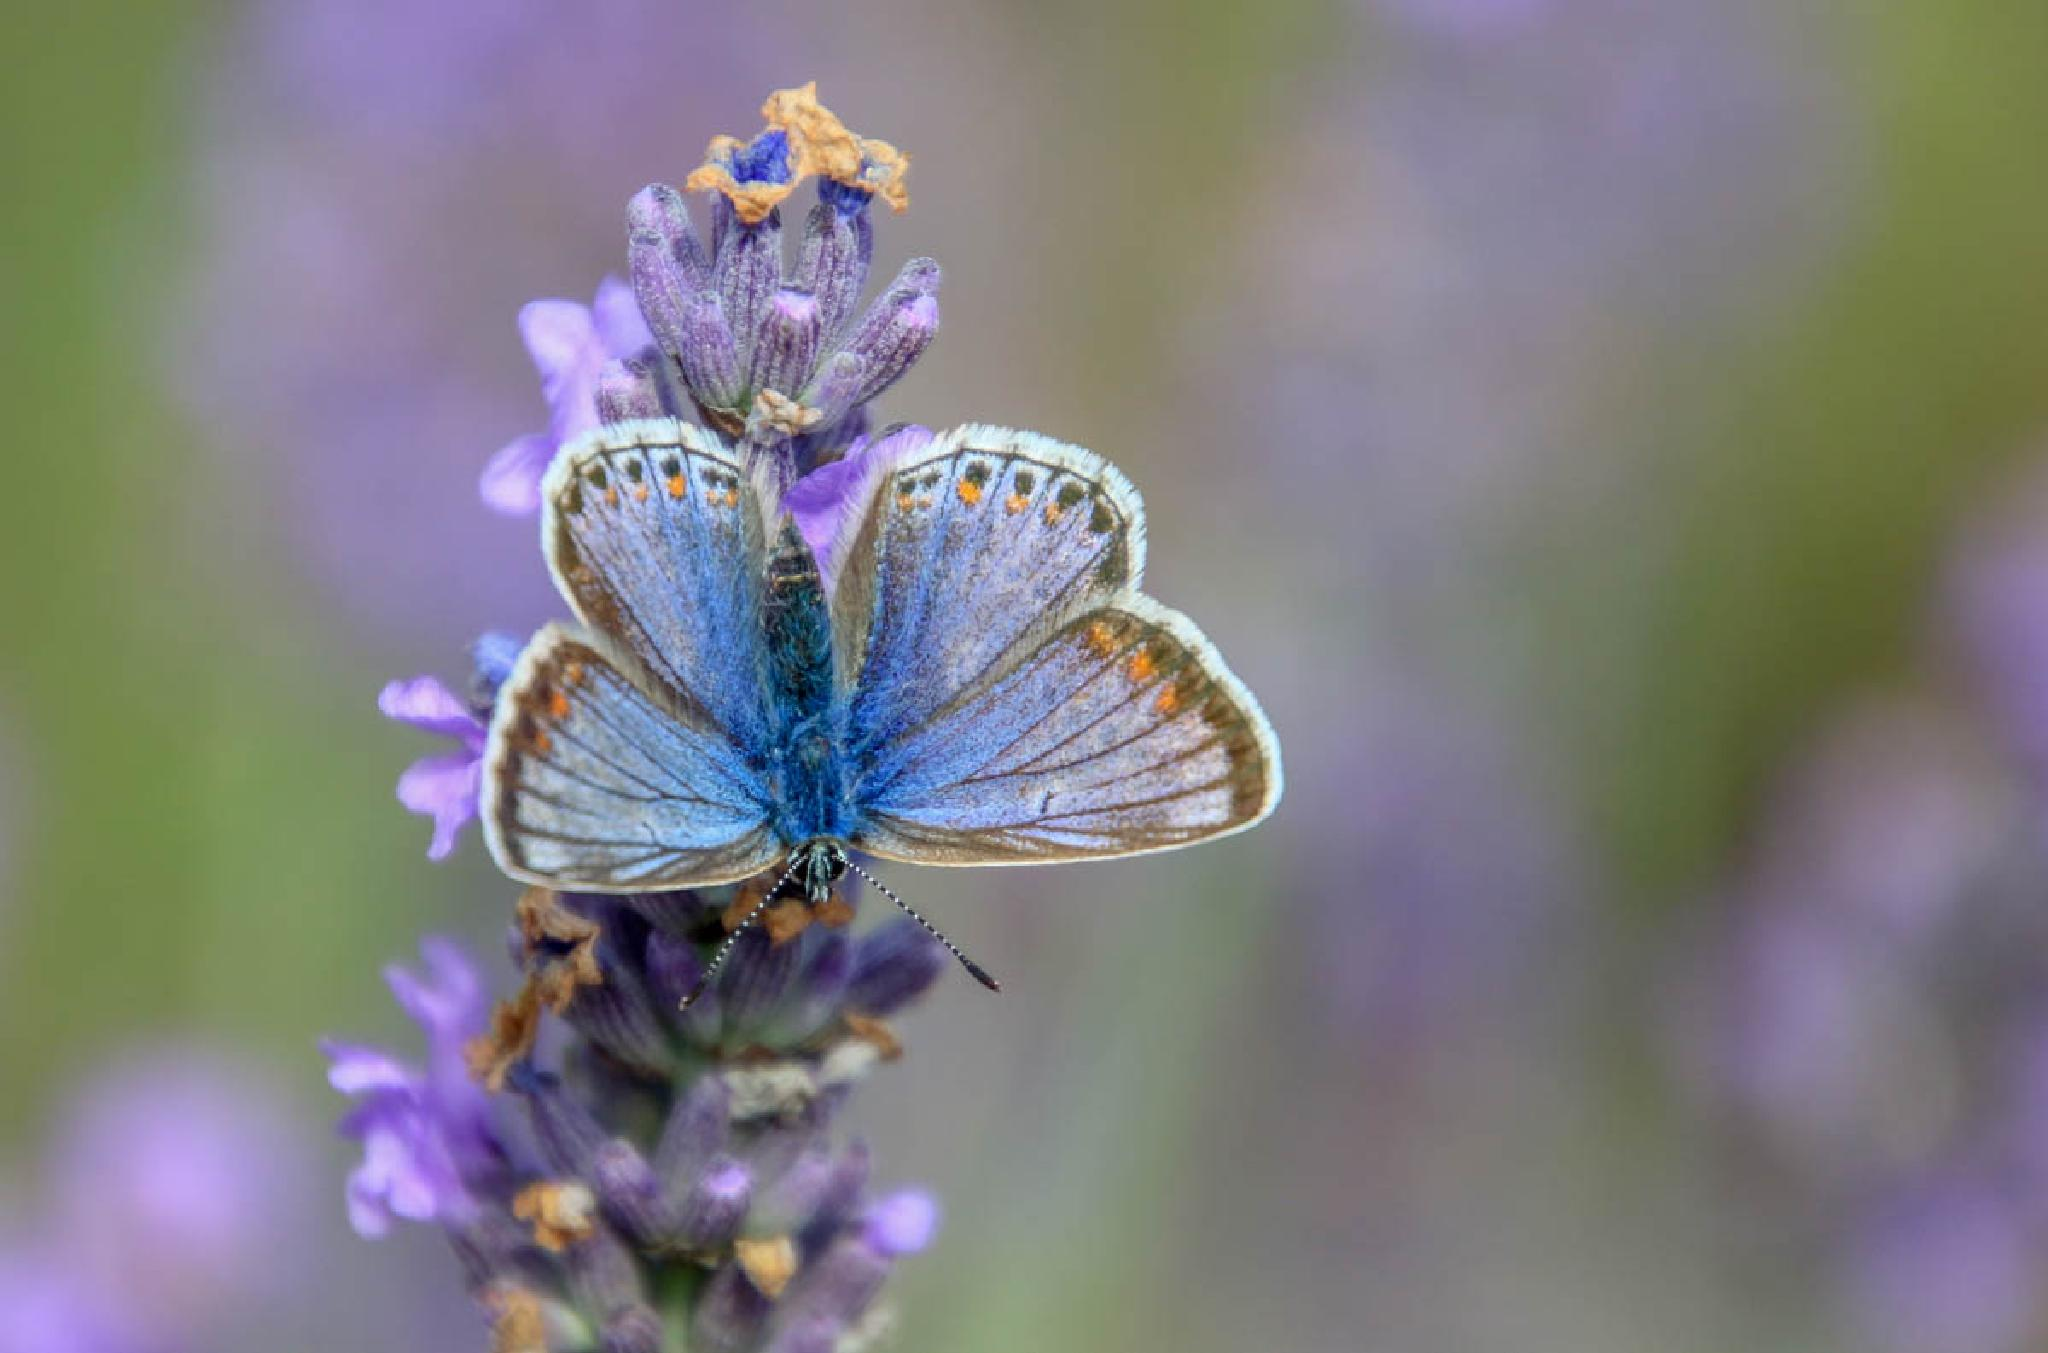 Common blue butterfly by MarkBriscoe